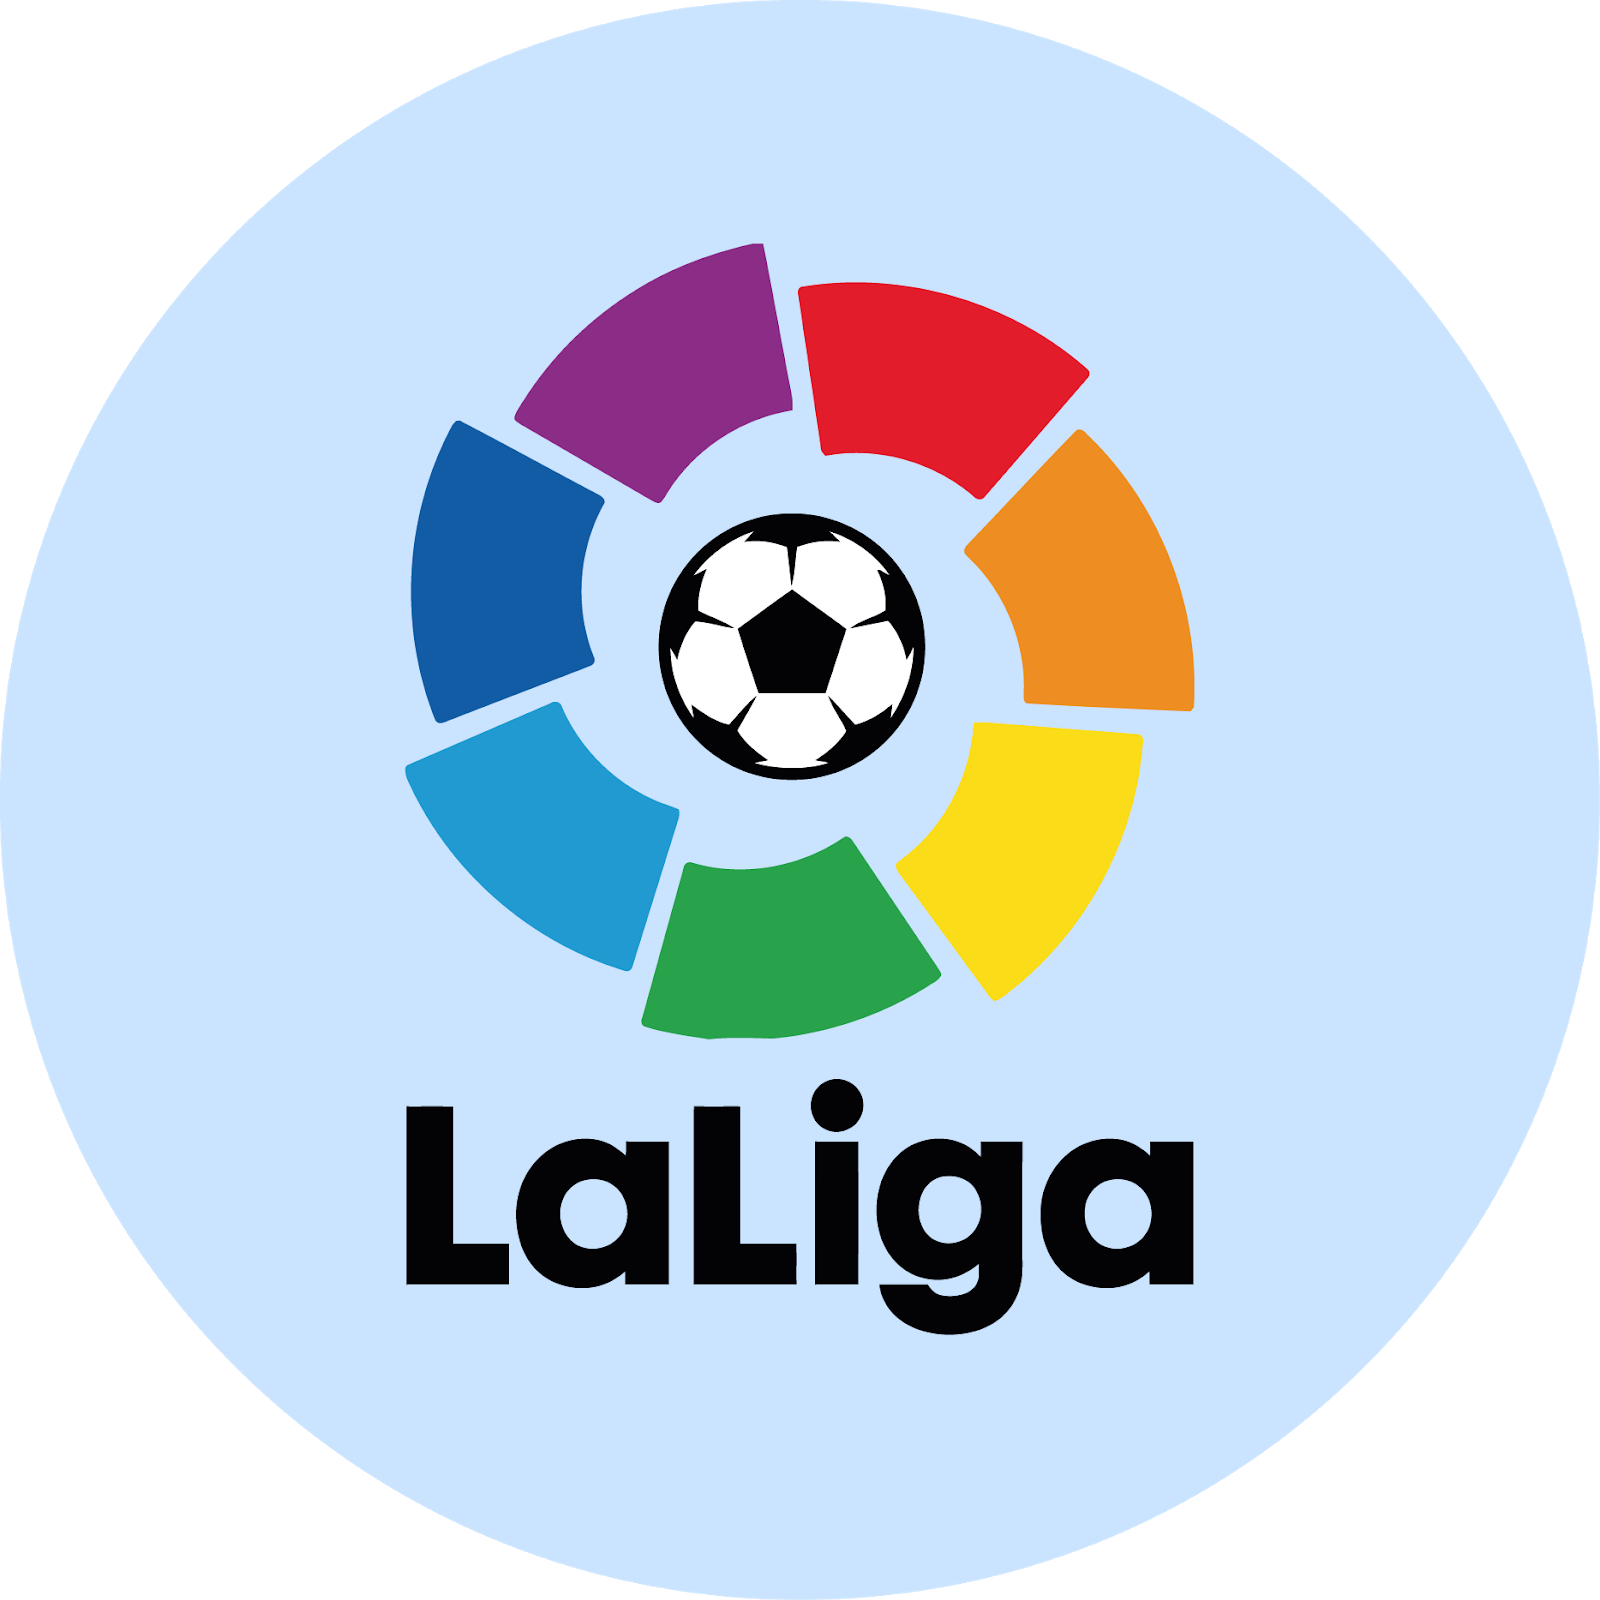 download icon LaLiga football spain svg eps png psd ai